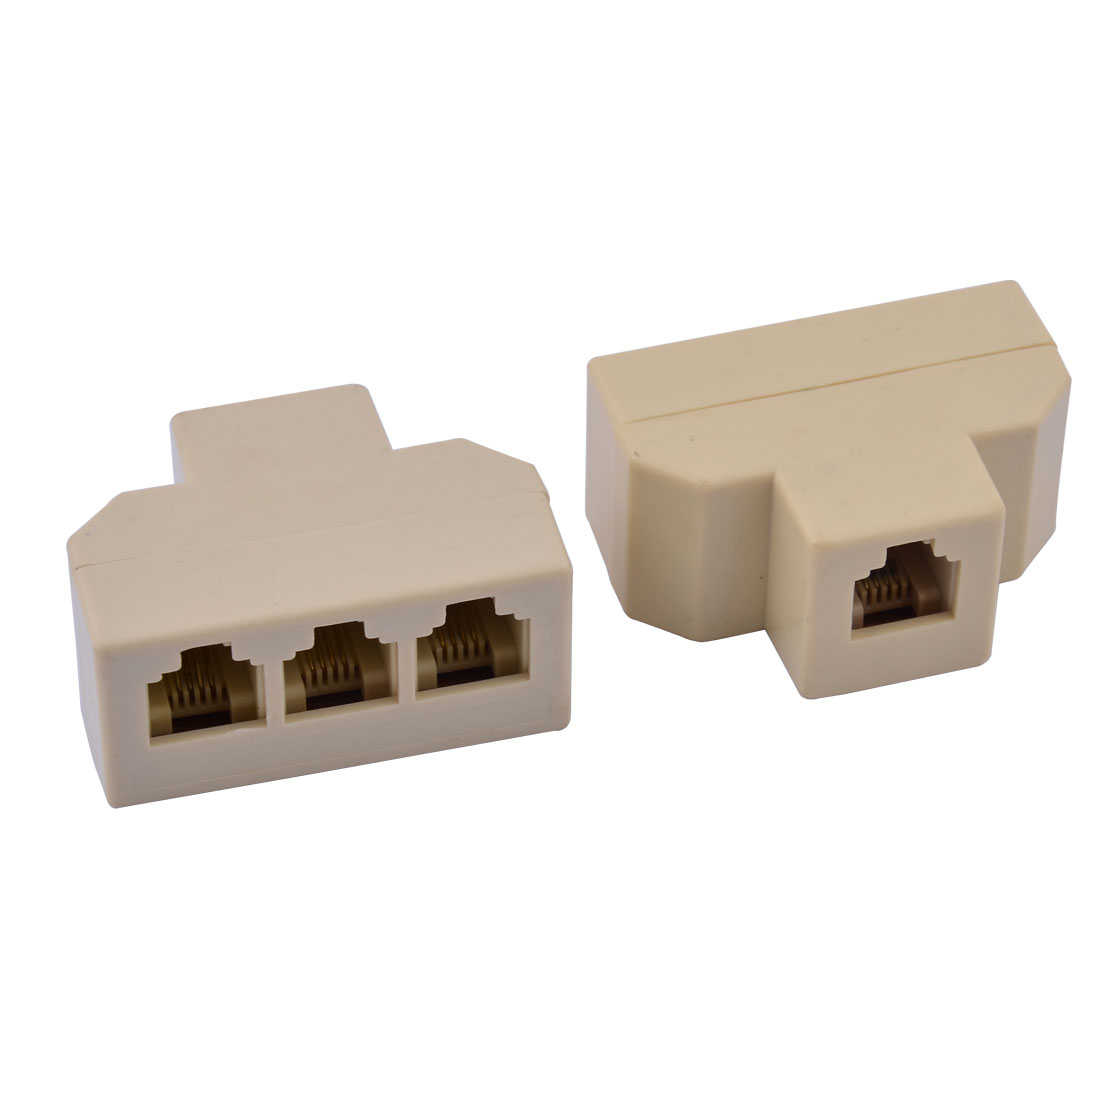 RJ11 6P4C Port Telephone Cable Adapter Splitter Connector Adapter Beige 2Pcs